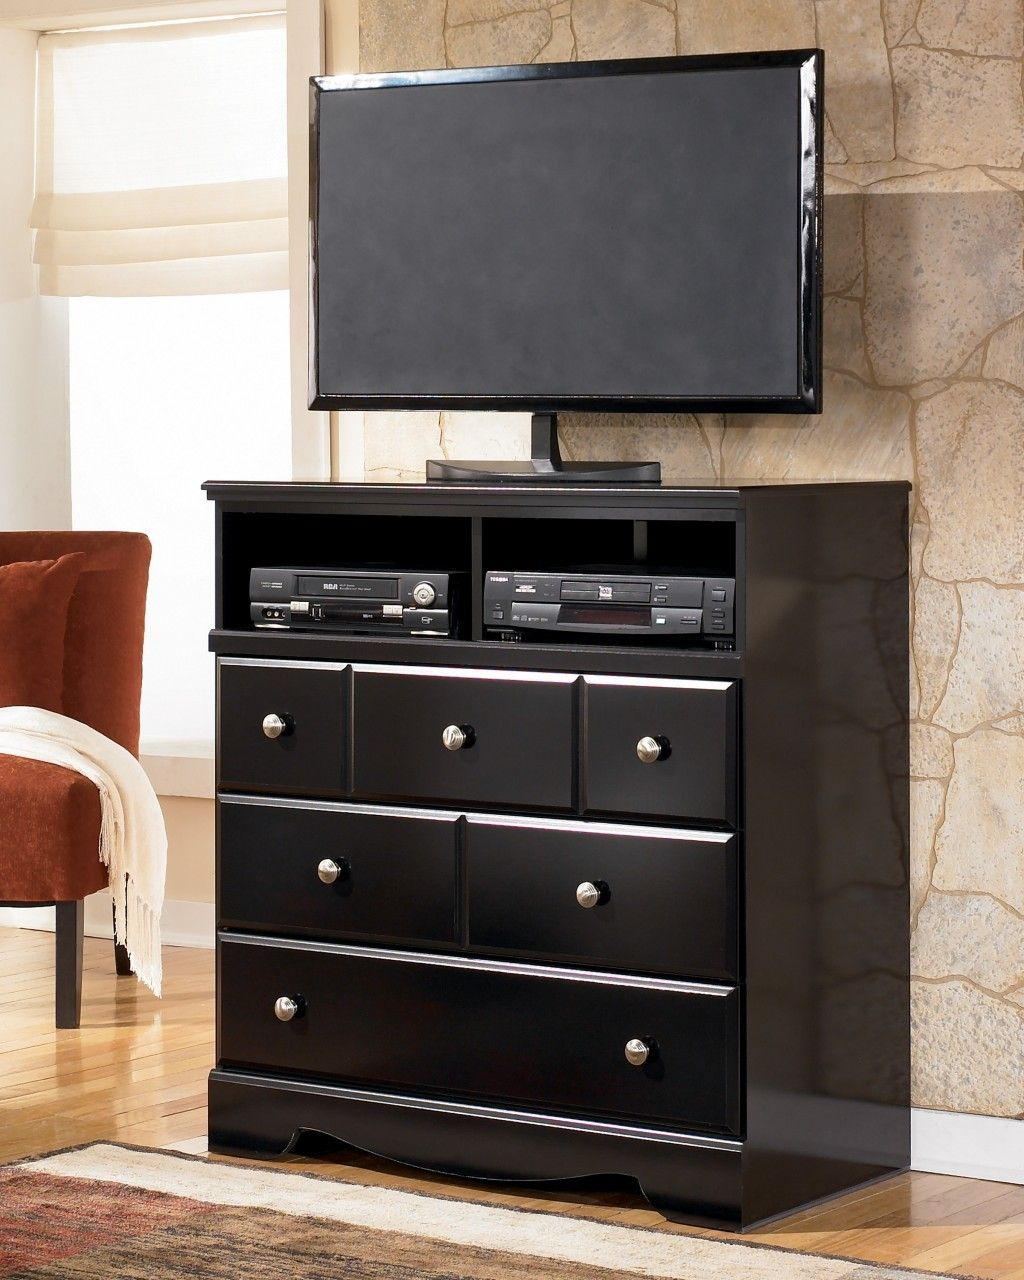 Miami Direct Furniture - The Shay bedroom collection media chest ...